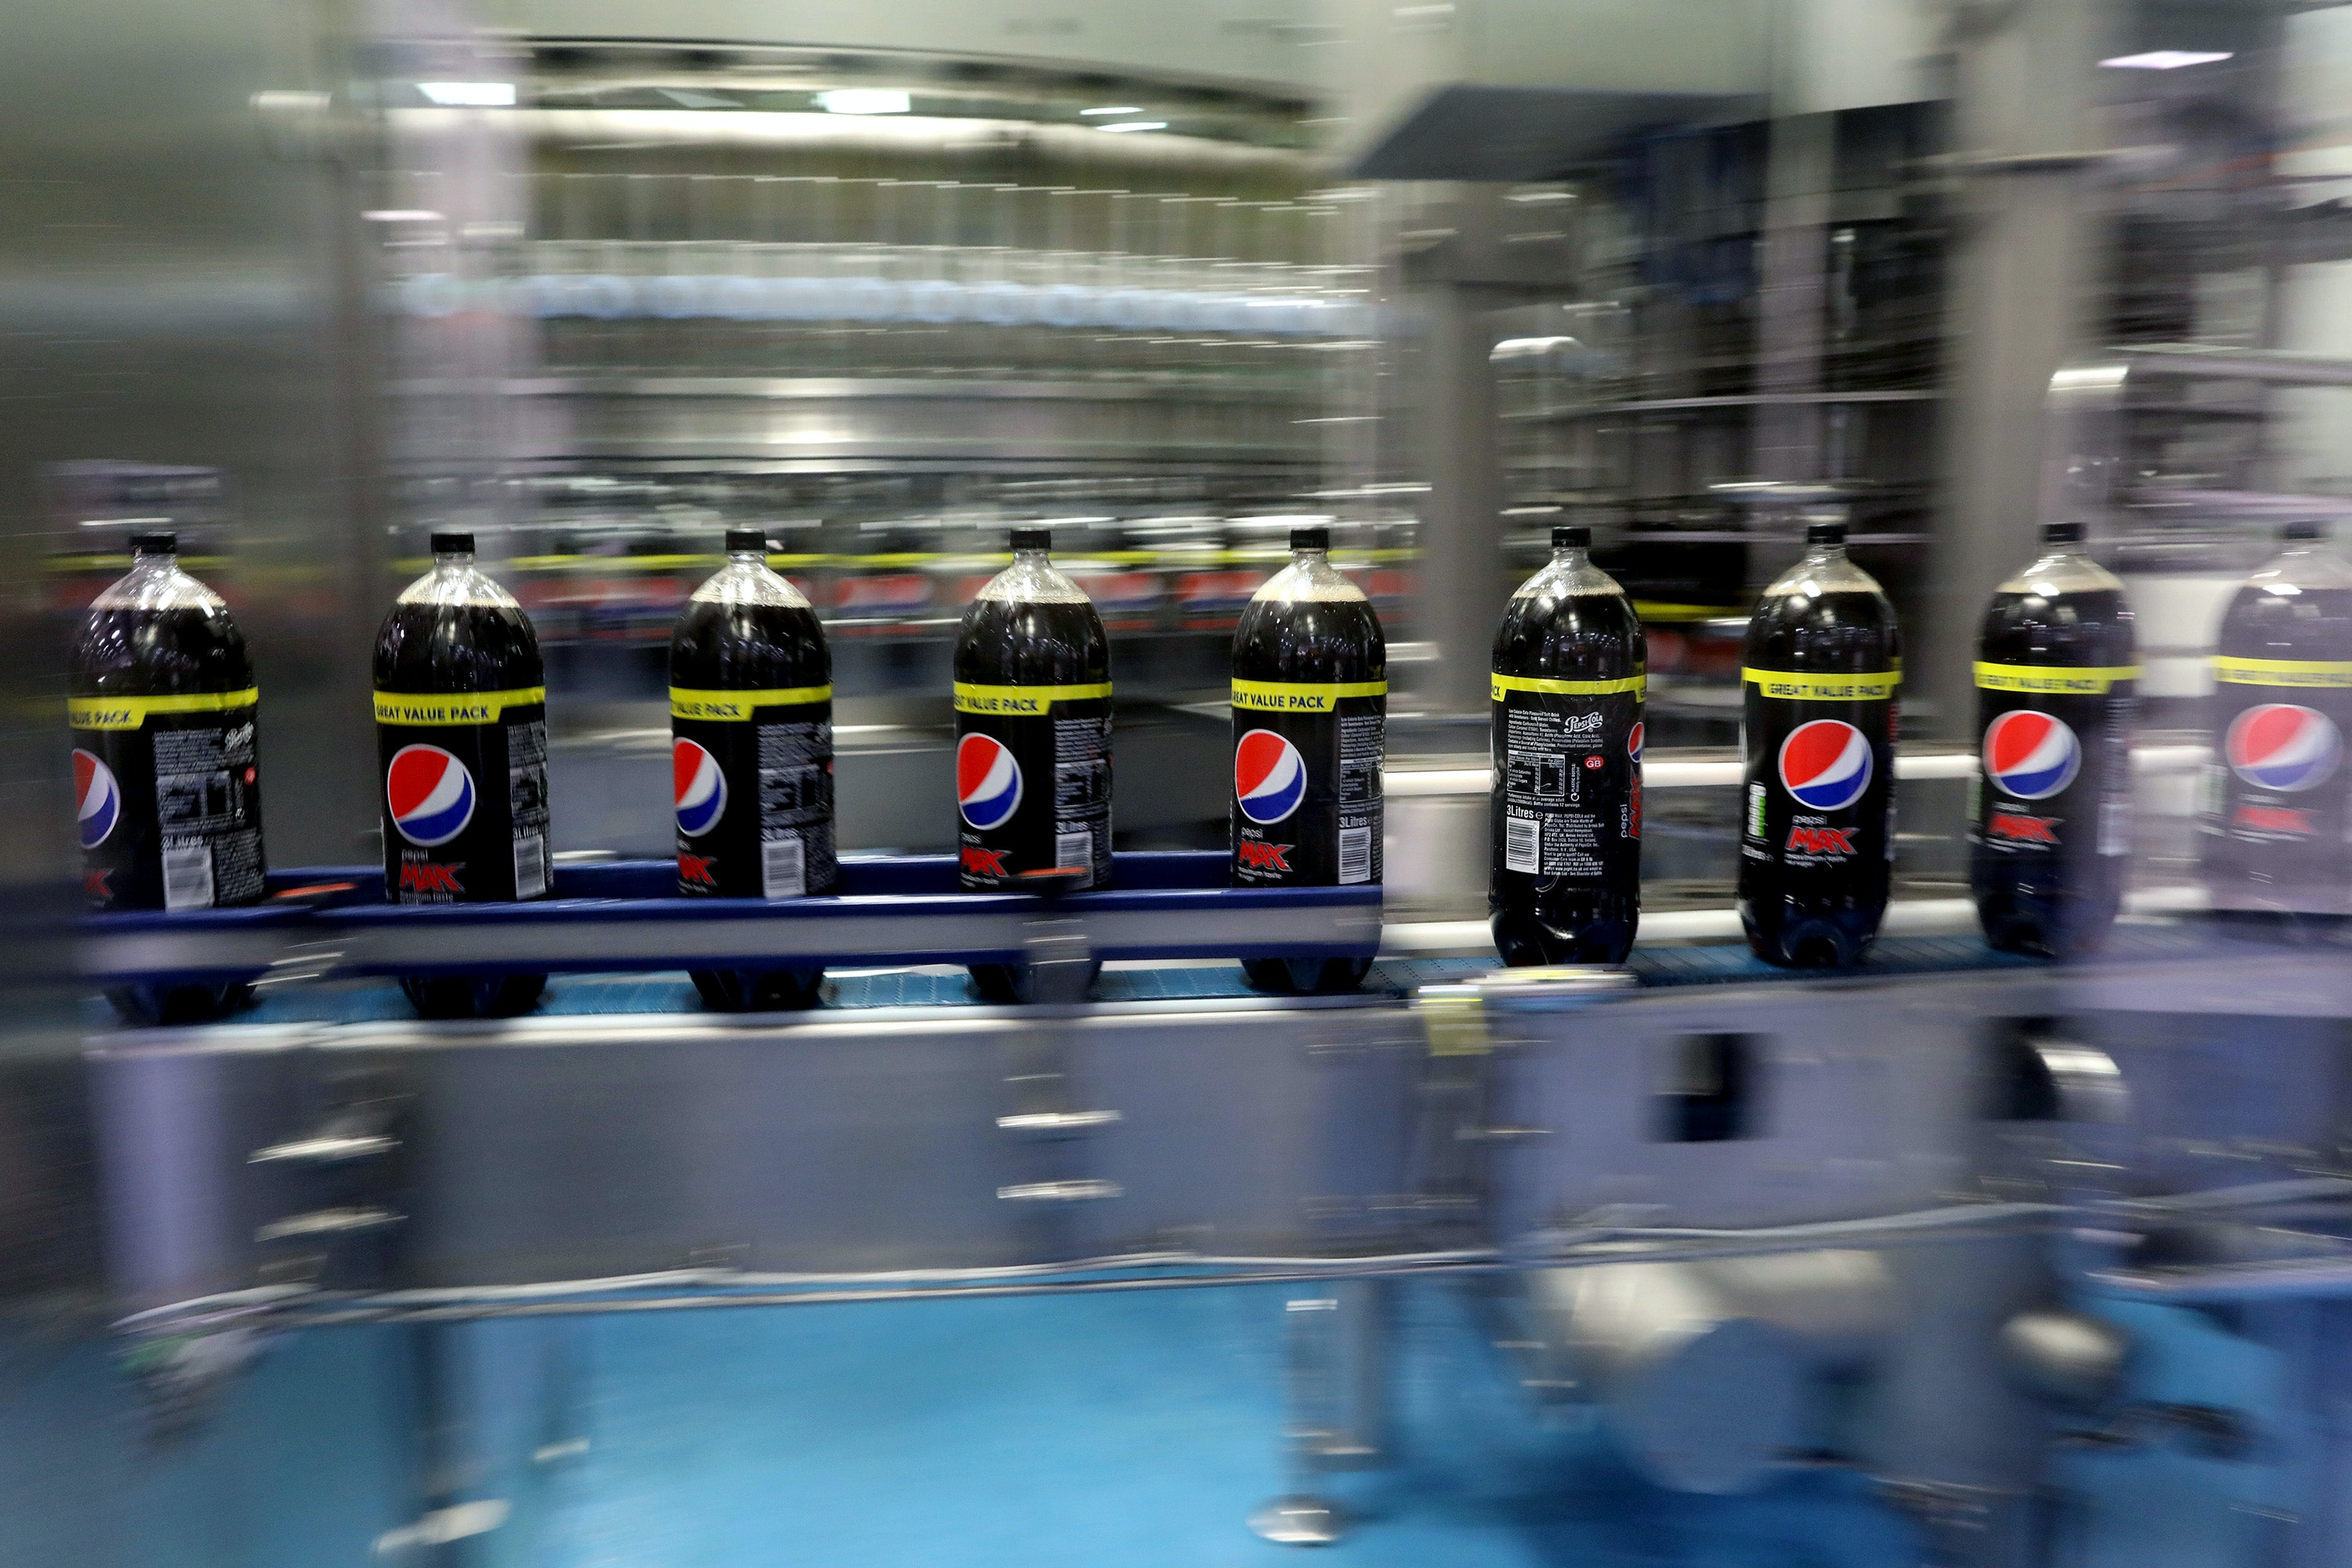 Bottles of Pepsi Max travel along the production line at the Britvic Plc factory and warehouse in Leeds, U.K., on Monday, Jan. 23, 2017. Britvic has agreed in principle to acquire Brazils Bela Ischia Alimentos Ltda, a producer of liquid concentrates and ready to drink juices. The company was founded in 1967 and is based in Astolfo Dutra, Brazil. Photographer: Chris Ratcliffe/Bloomberg via Getty Images